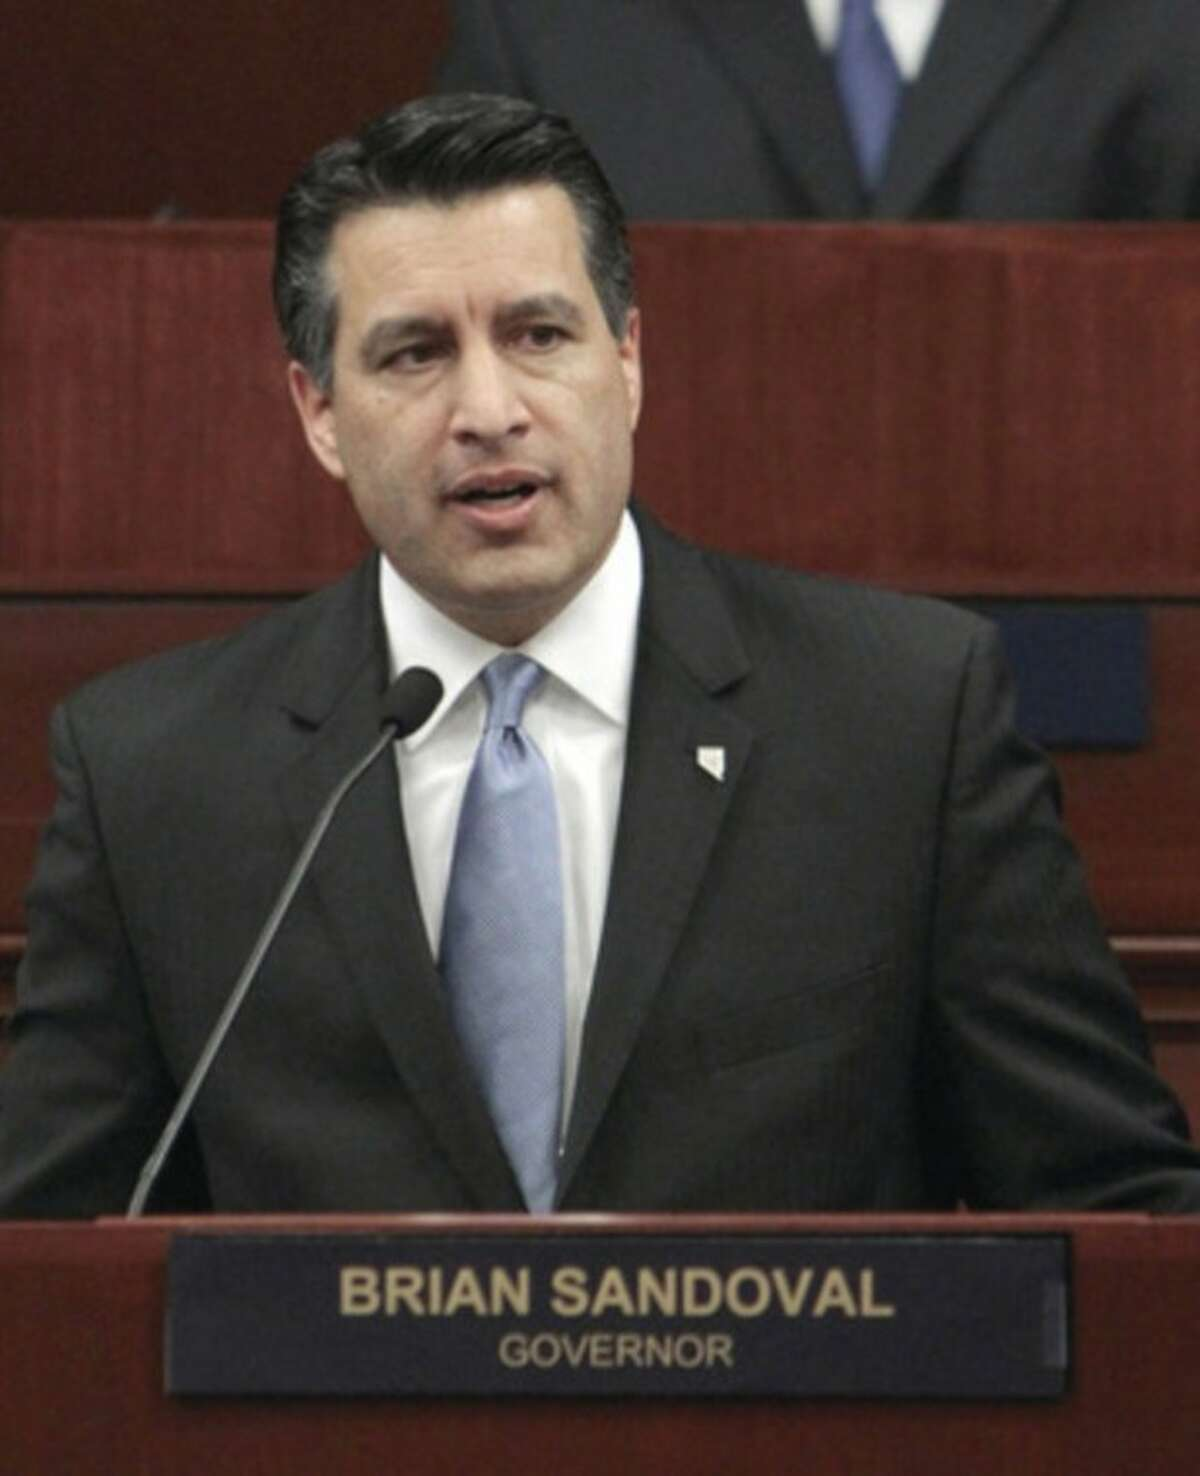 FILE - In this Jan. 24, 2011 file photo, Nevada Gov. Brian Sandoval makes his first State of the State address in Carson City, Nev. Sandoval, New Mexico Gov. Susana Martinez, and Florida Sen. Marc Rubio are popular, political newcomers who toe a safe party line in presidential battleground states. The rising GOP stars are also Hispanics, a fact the Republican Party clearly hopes to capitalize on in the upcoming national elections. (AP Photo/Rich Pedroncelli, File)